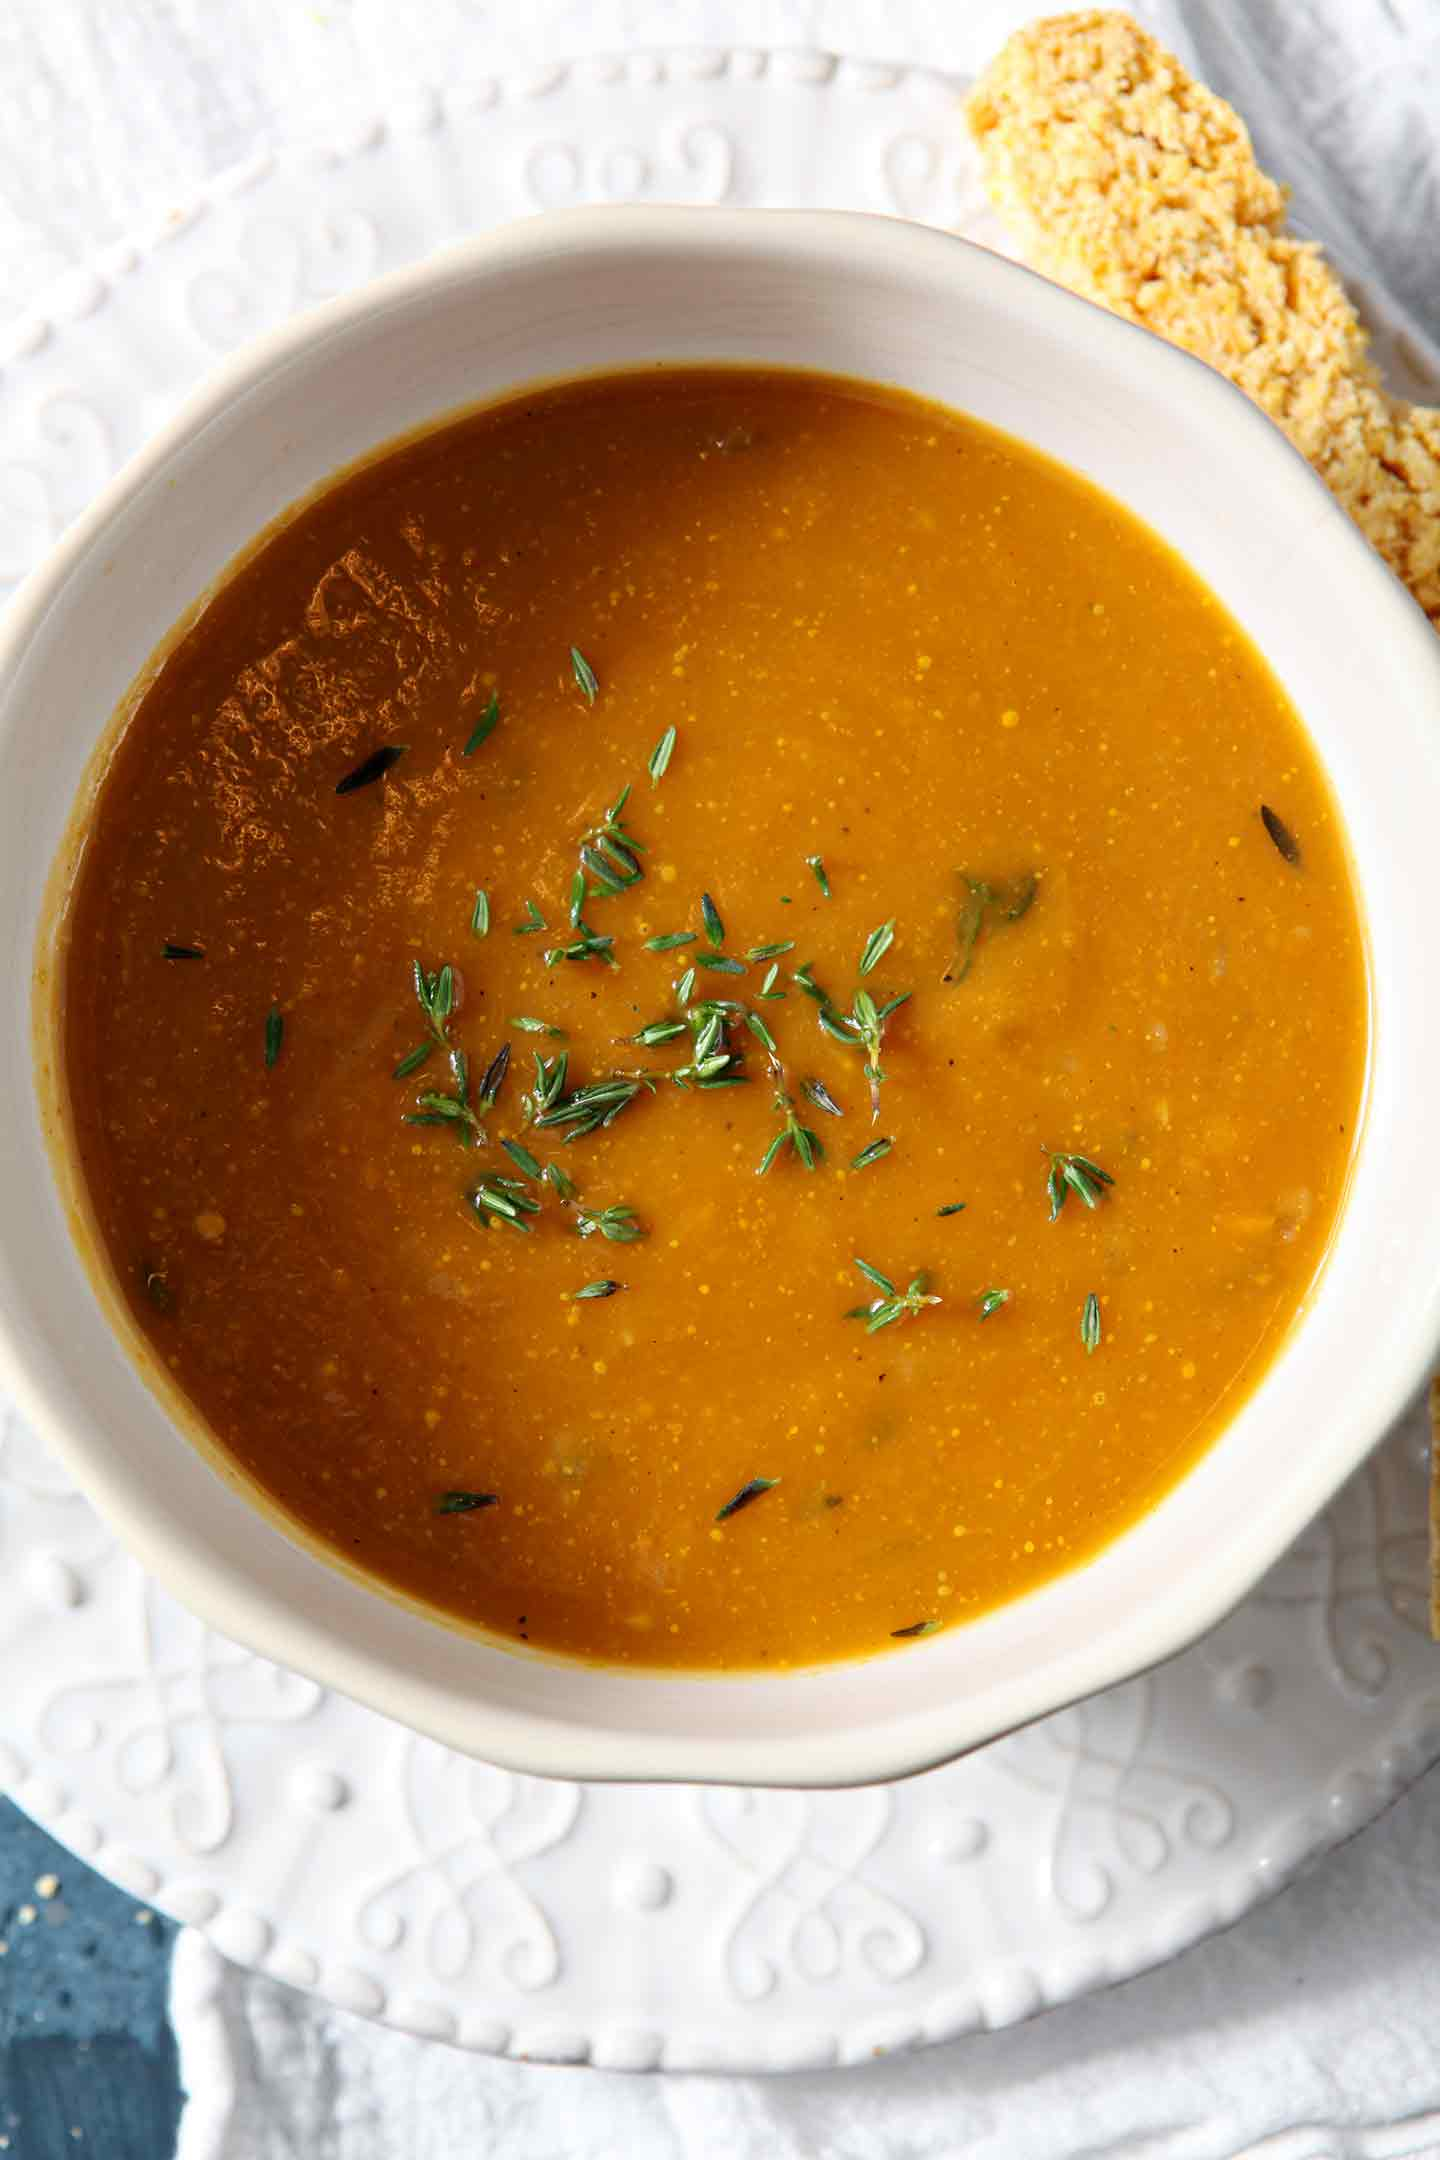 One bowl of Sweet Potato Bisque on a blue background with cornbread biscotti